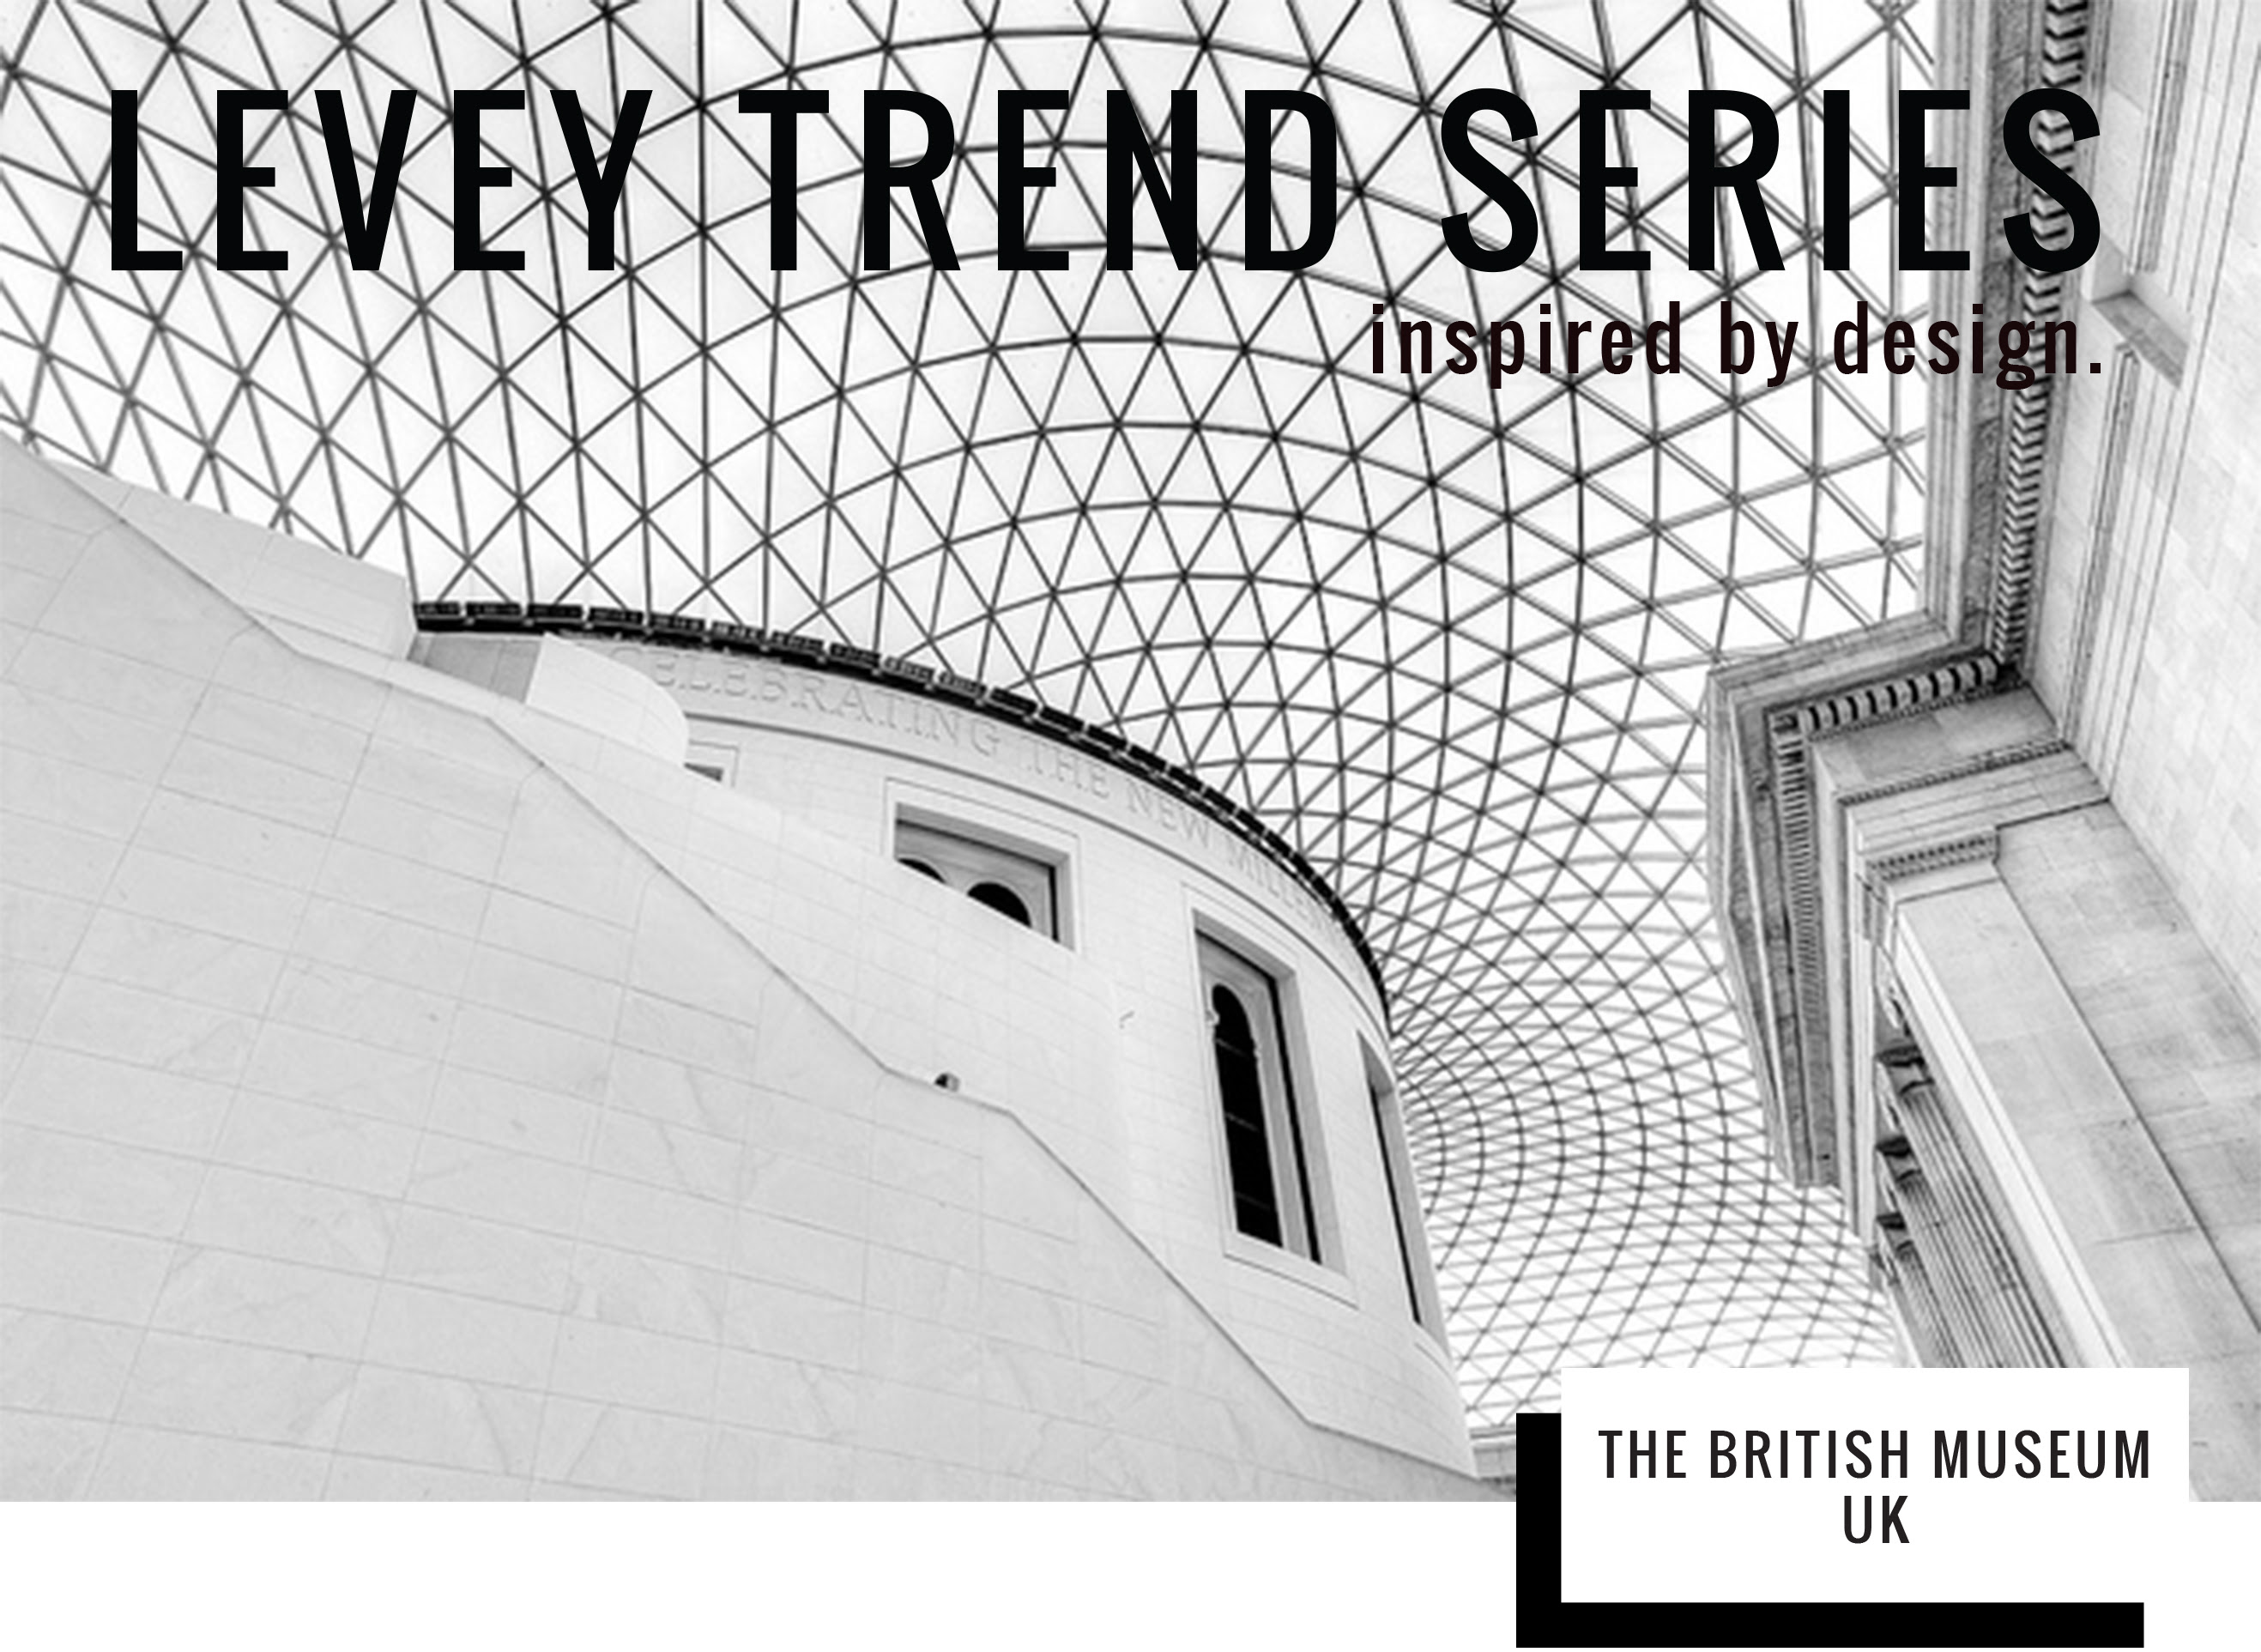 Levey Trend Series Architectural Lines